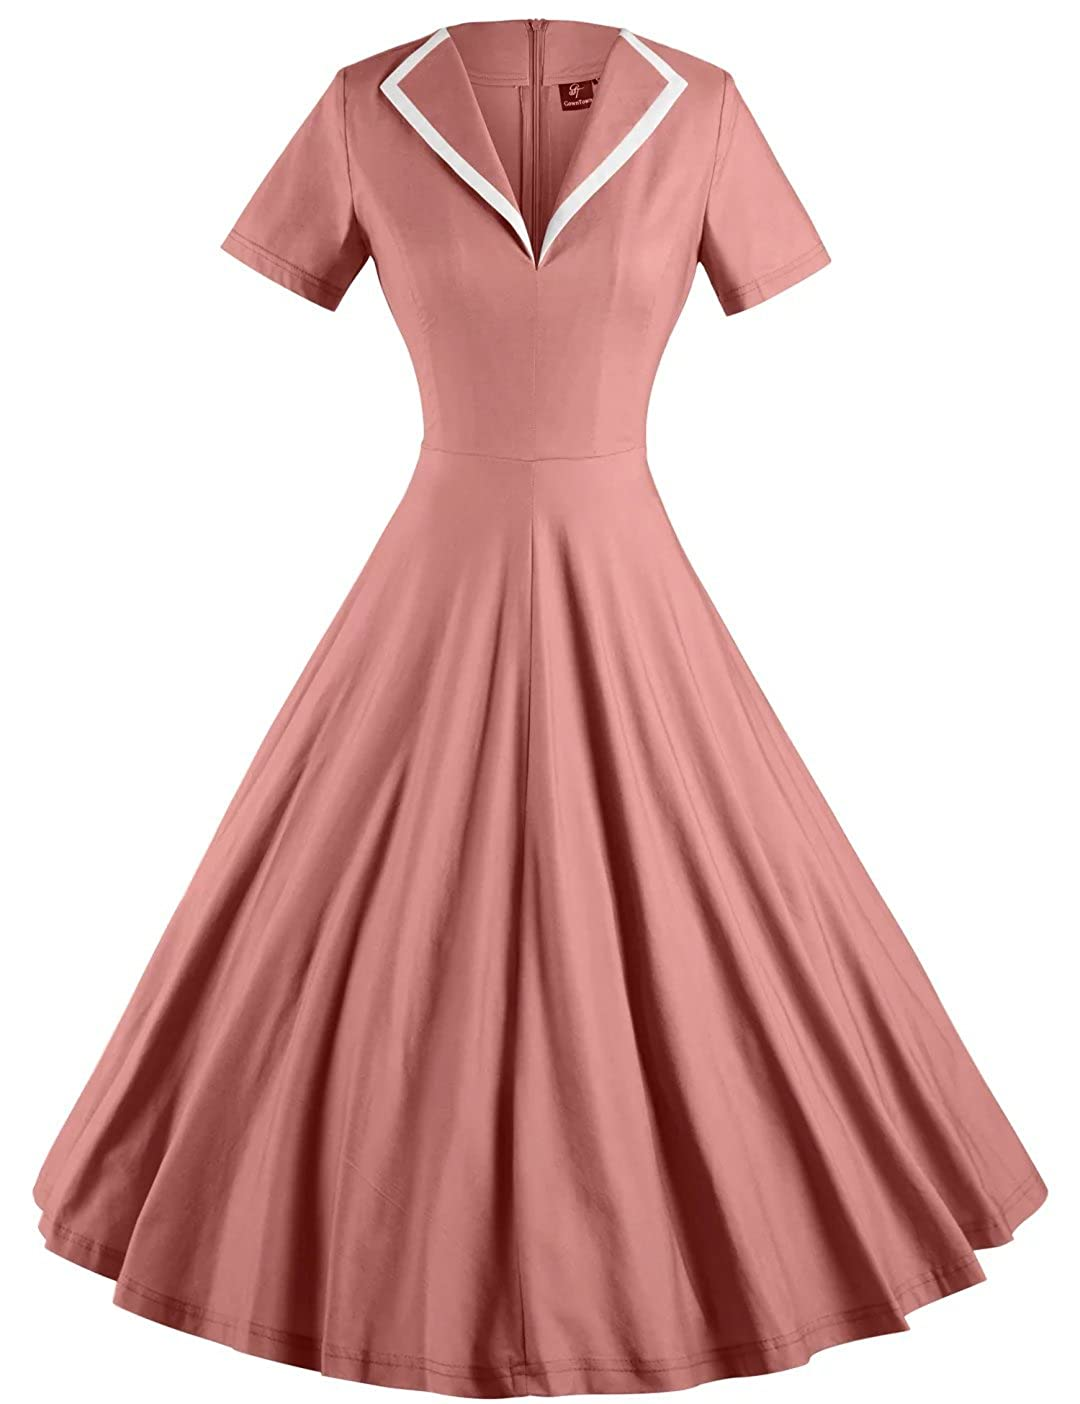 1950s Housewife Dress | 50s Day Dresses GownTown Womens 1950s Retro Vintage V-Neck Party Swing Dress $35.98 AT vintagedancer.com